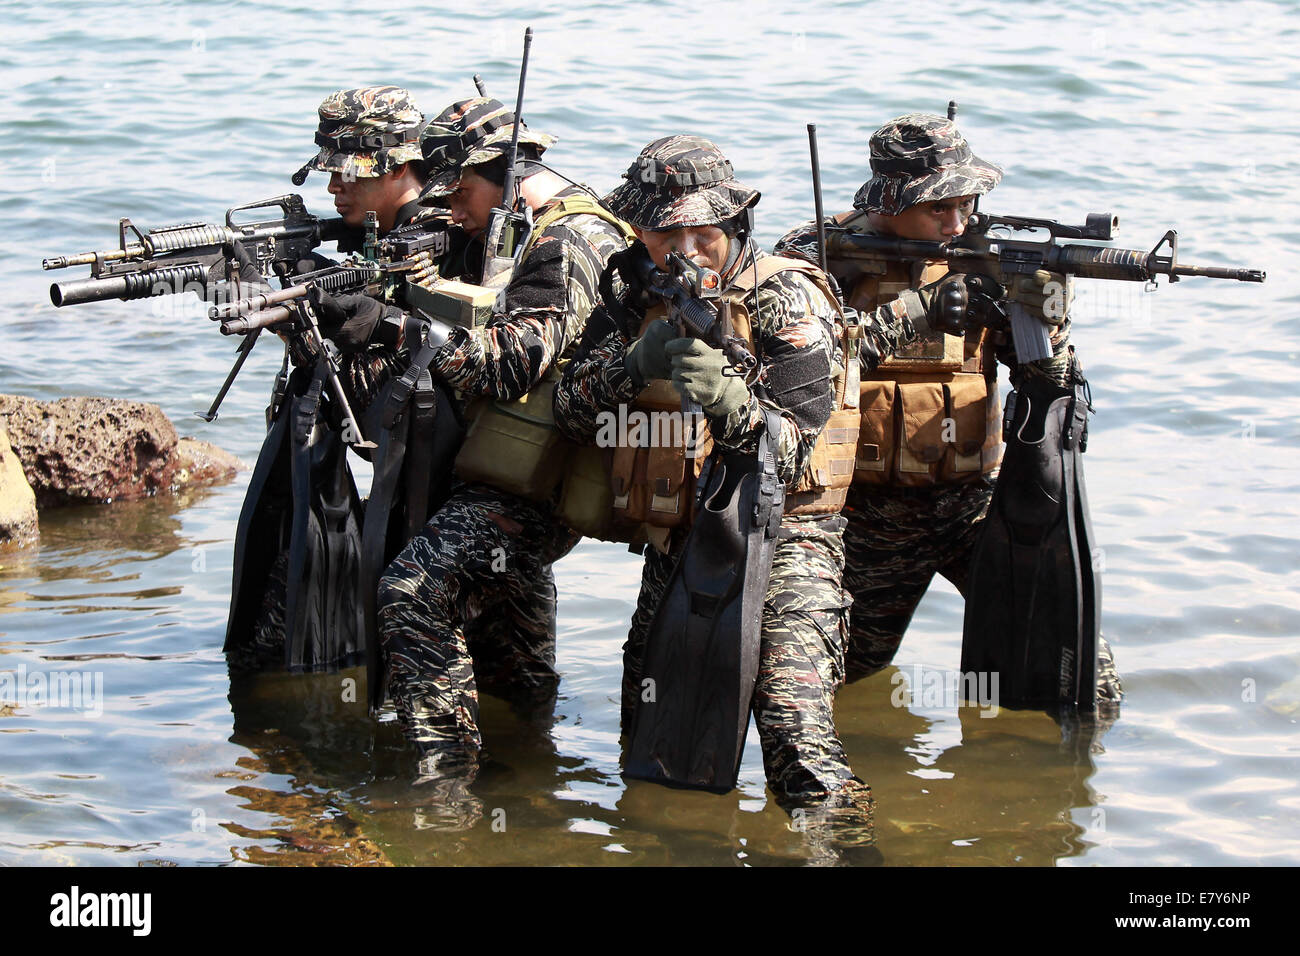 Cavite Province, Philippines  26th Sep, 2014  New recruits